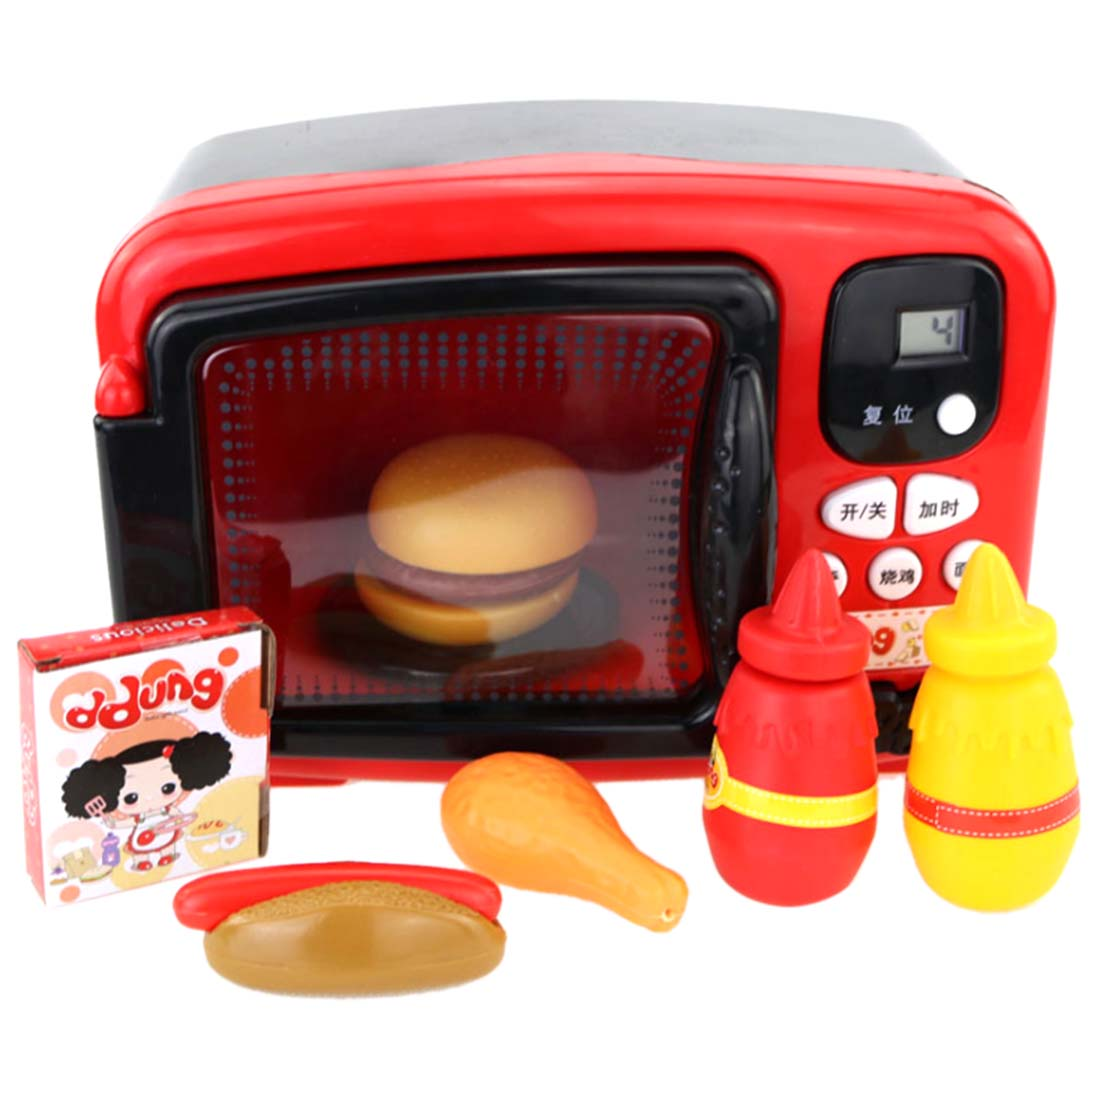 Children L Simulated Microwave Oven Pretend Play Kitchen Toy Educational Playset food Heats Up Hamburger Early